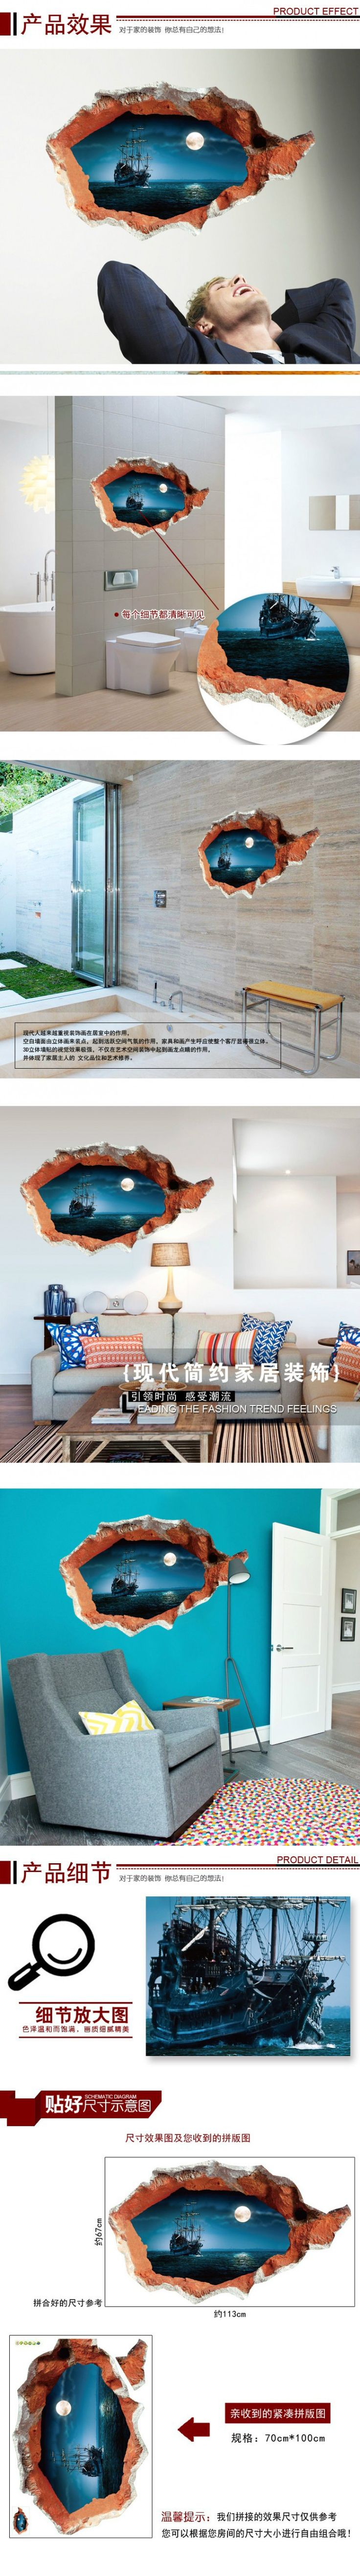 best 25 sea murals ideas on pinterest wall murals bedroom tree extra large sticker 3d wall decals vinyl pirate ship night sea mural art removable fashion home decoration 70 100 cm